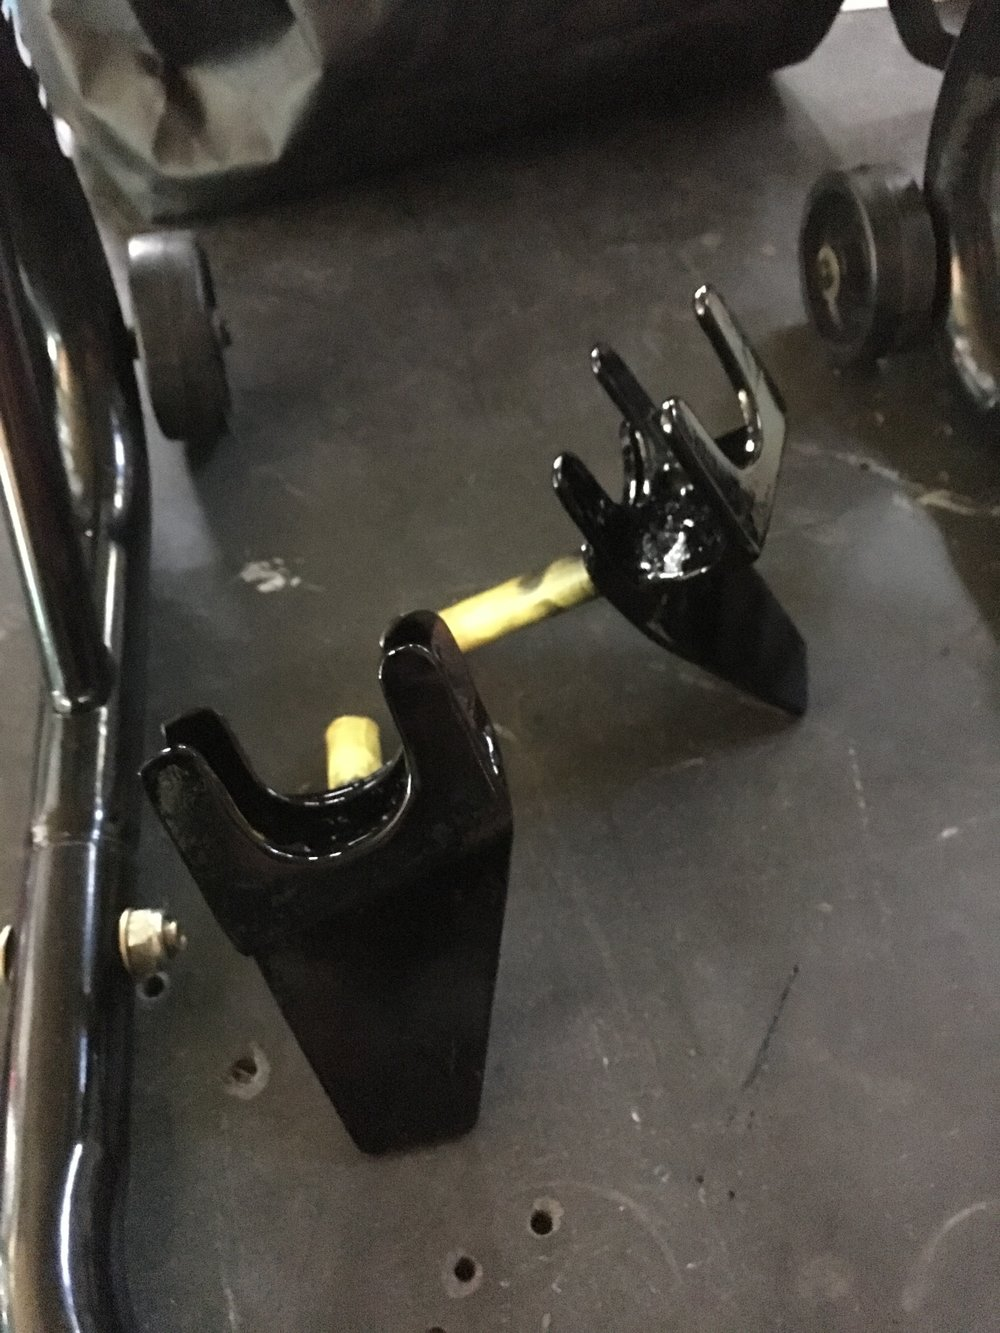 Some special fittings made for the front fork wheel stand to allow wheel removal. Since there is a belly pan and no frame under the front of the engine, there is no good jack point.